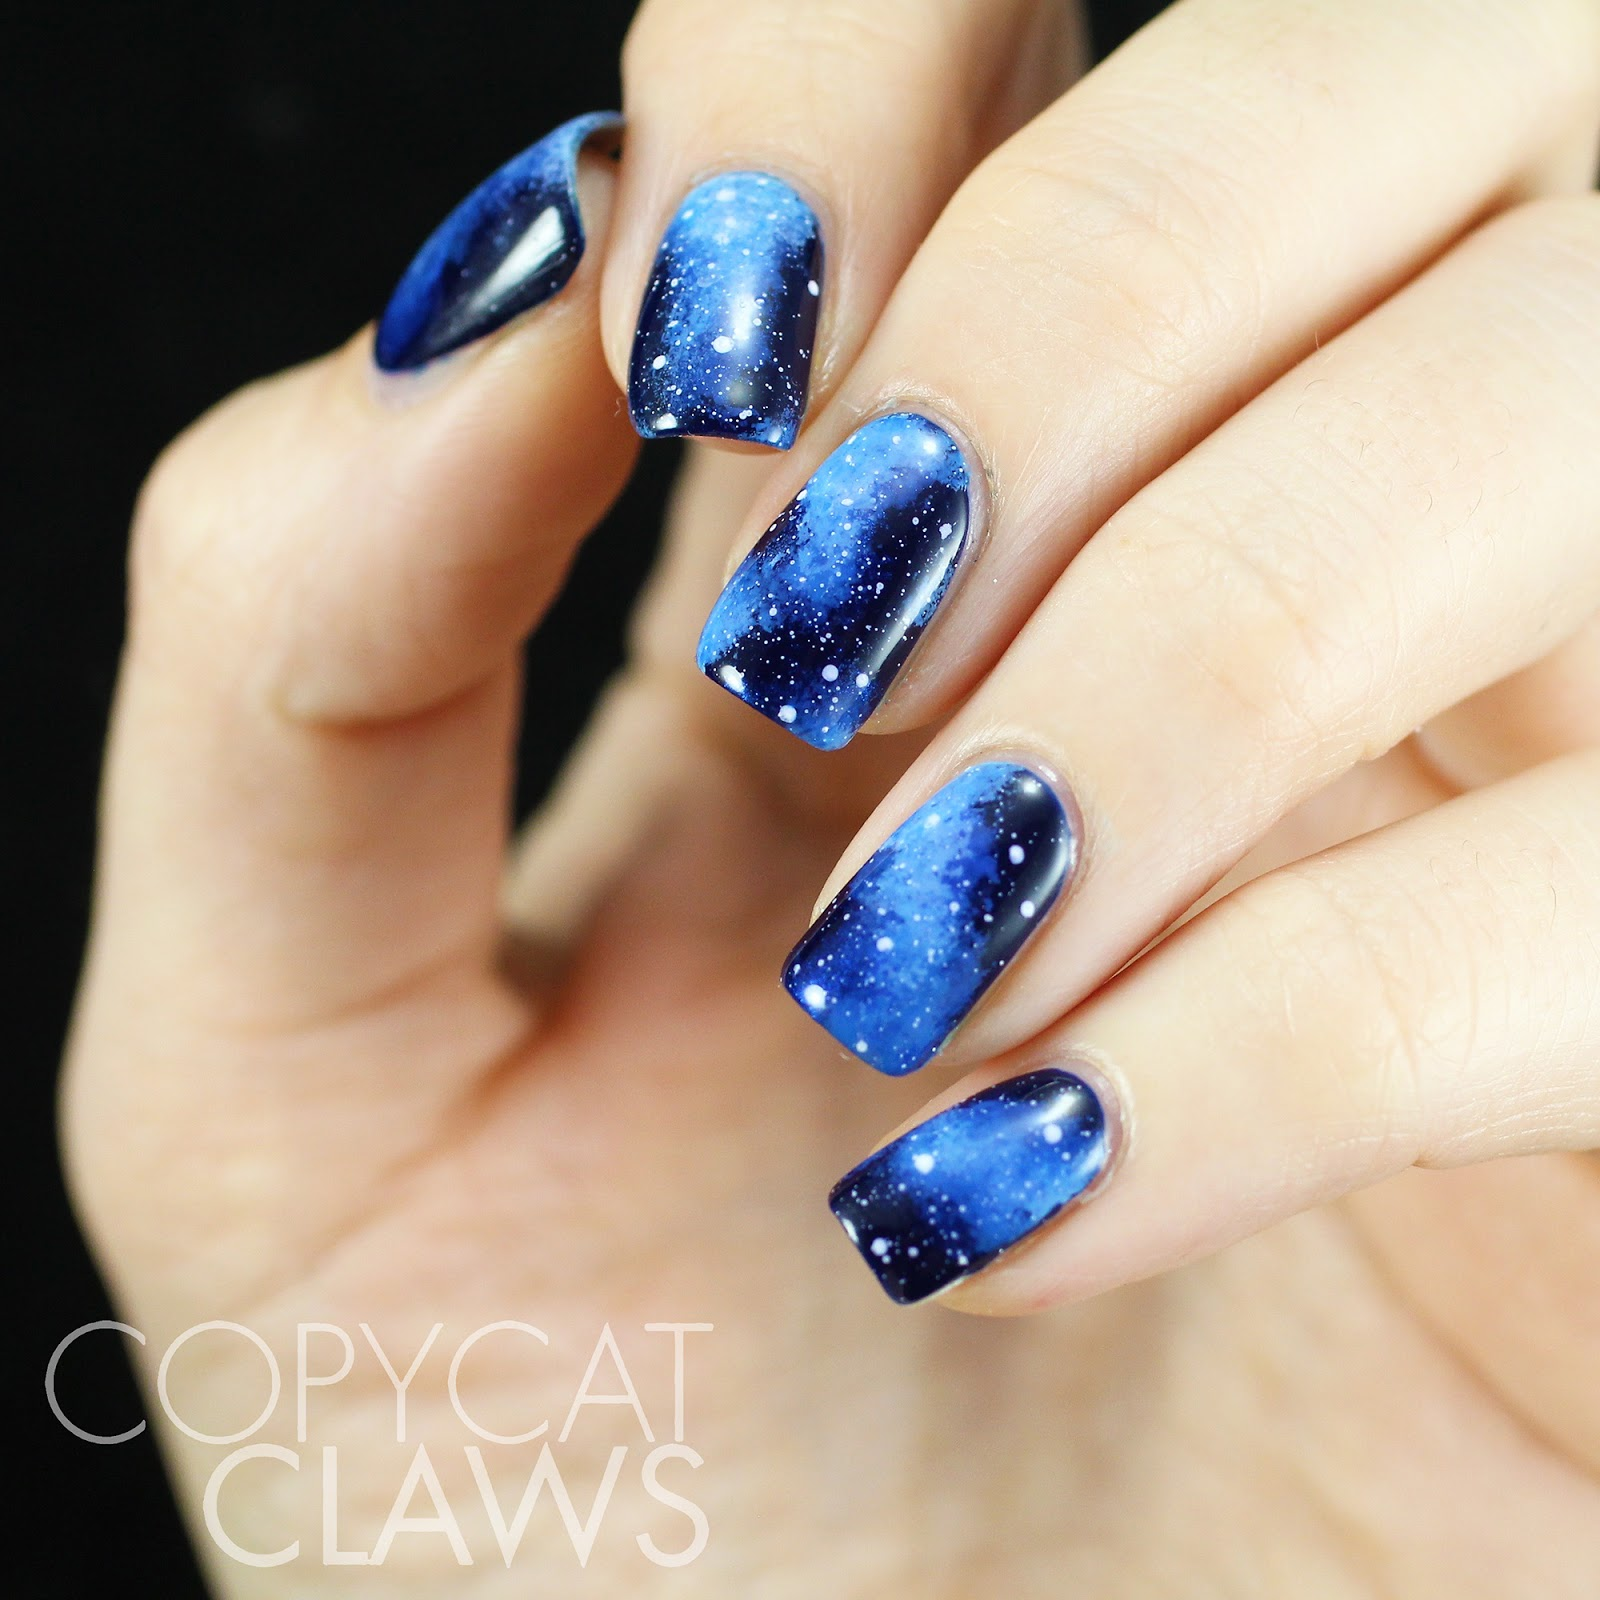 Copycat Claws: The Hitchhiker\'s Guide To The Galaxy Nail Art